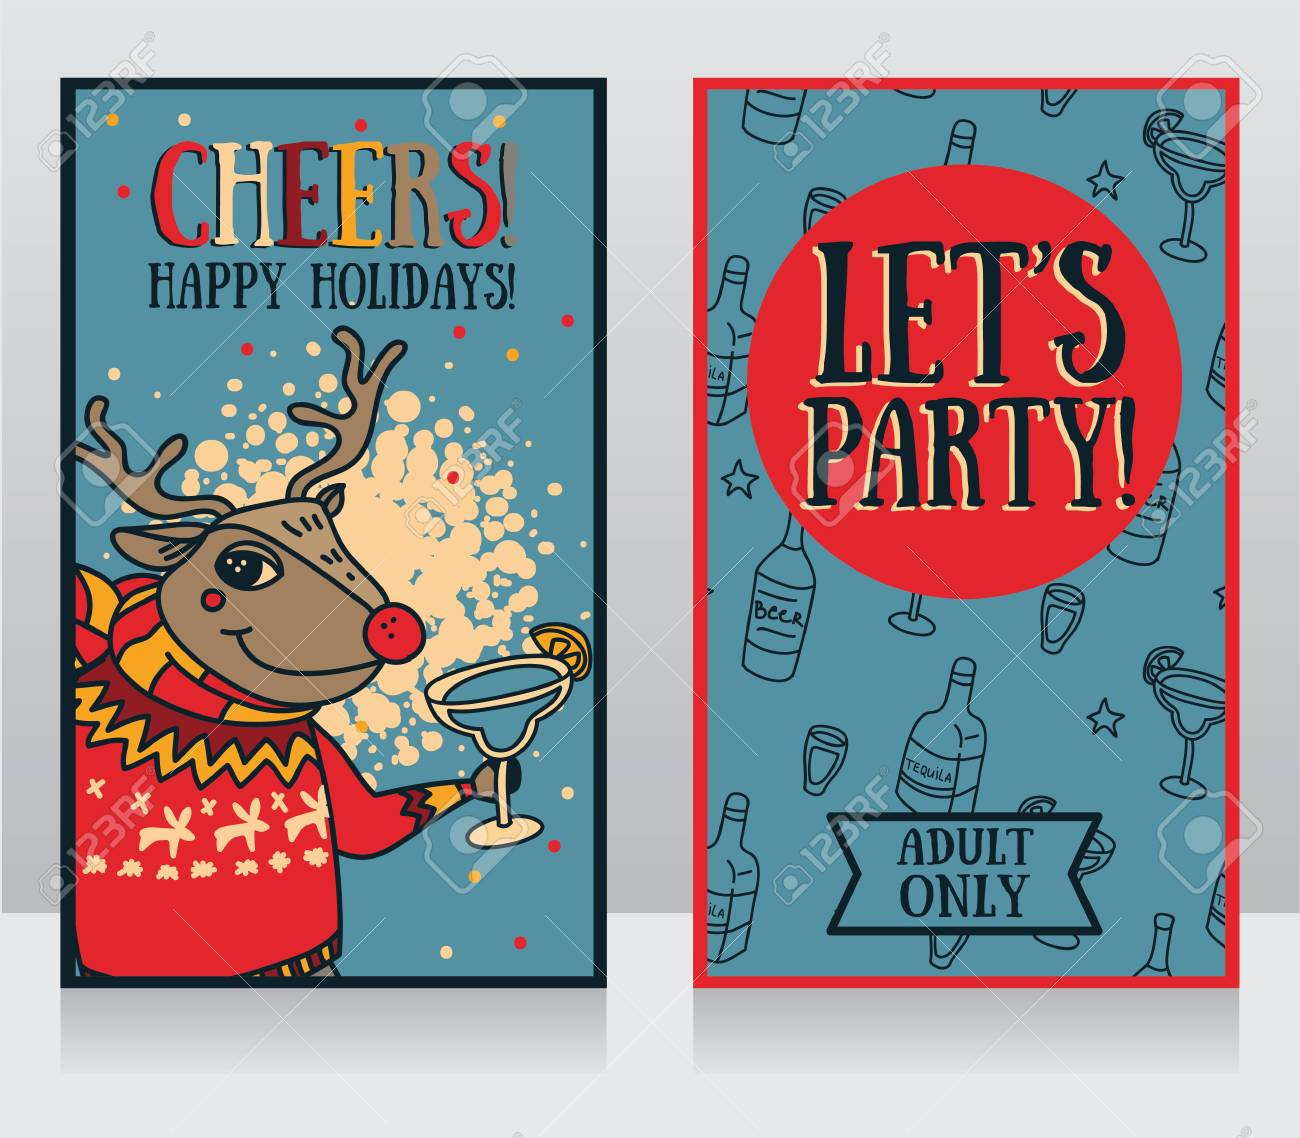 Templates For Christmas Party Invitations Card Royalty Free